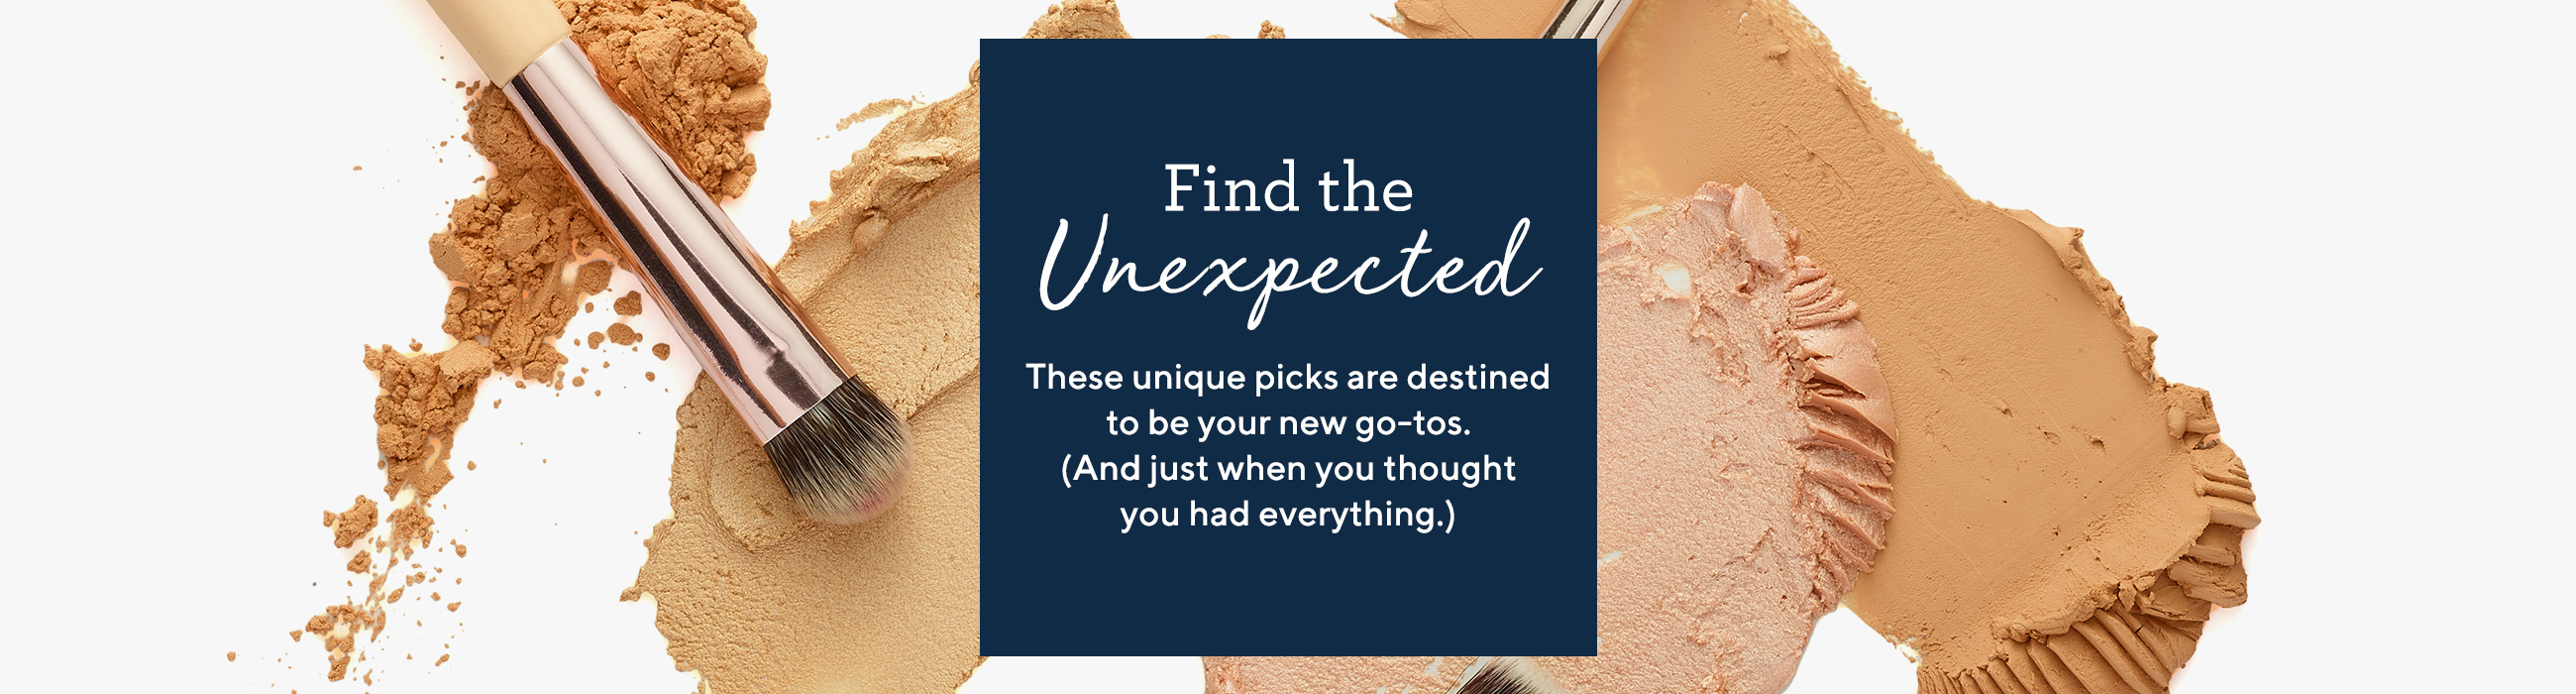 Find the Unexpected…  These unique picks are destined to be your new go-tos.   (And just when you thought you had everything.)